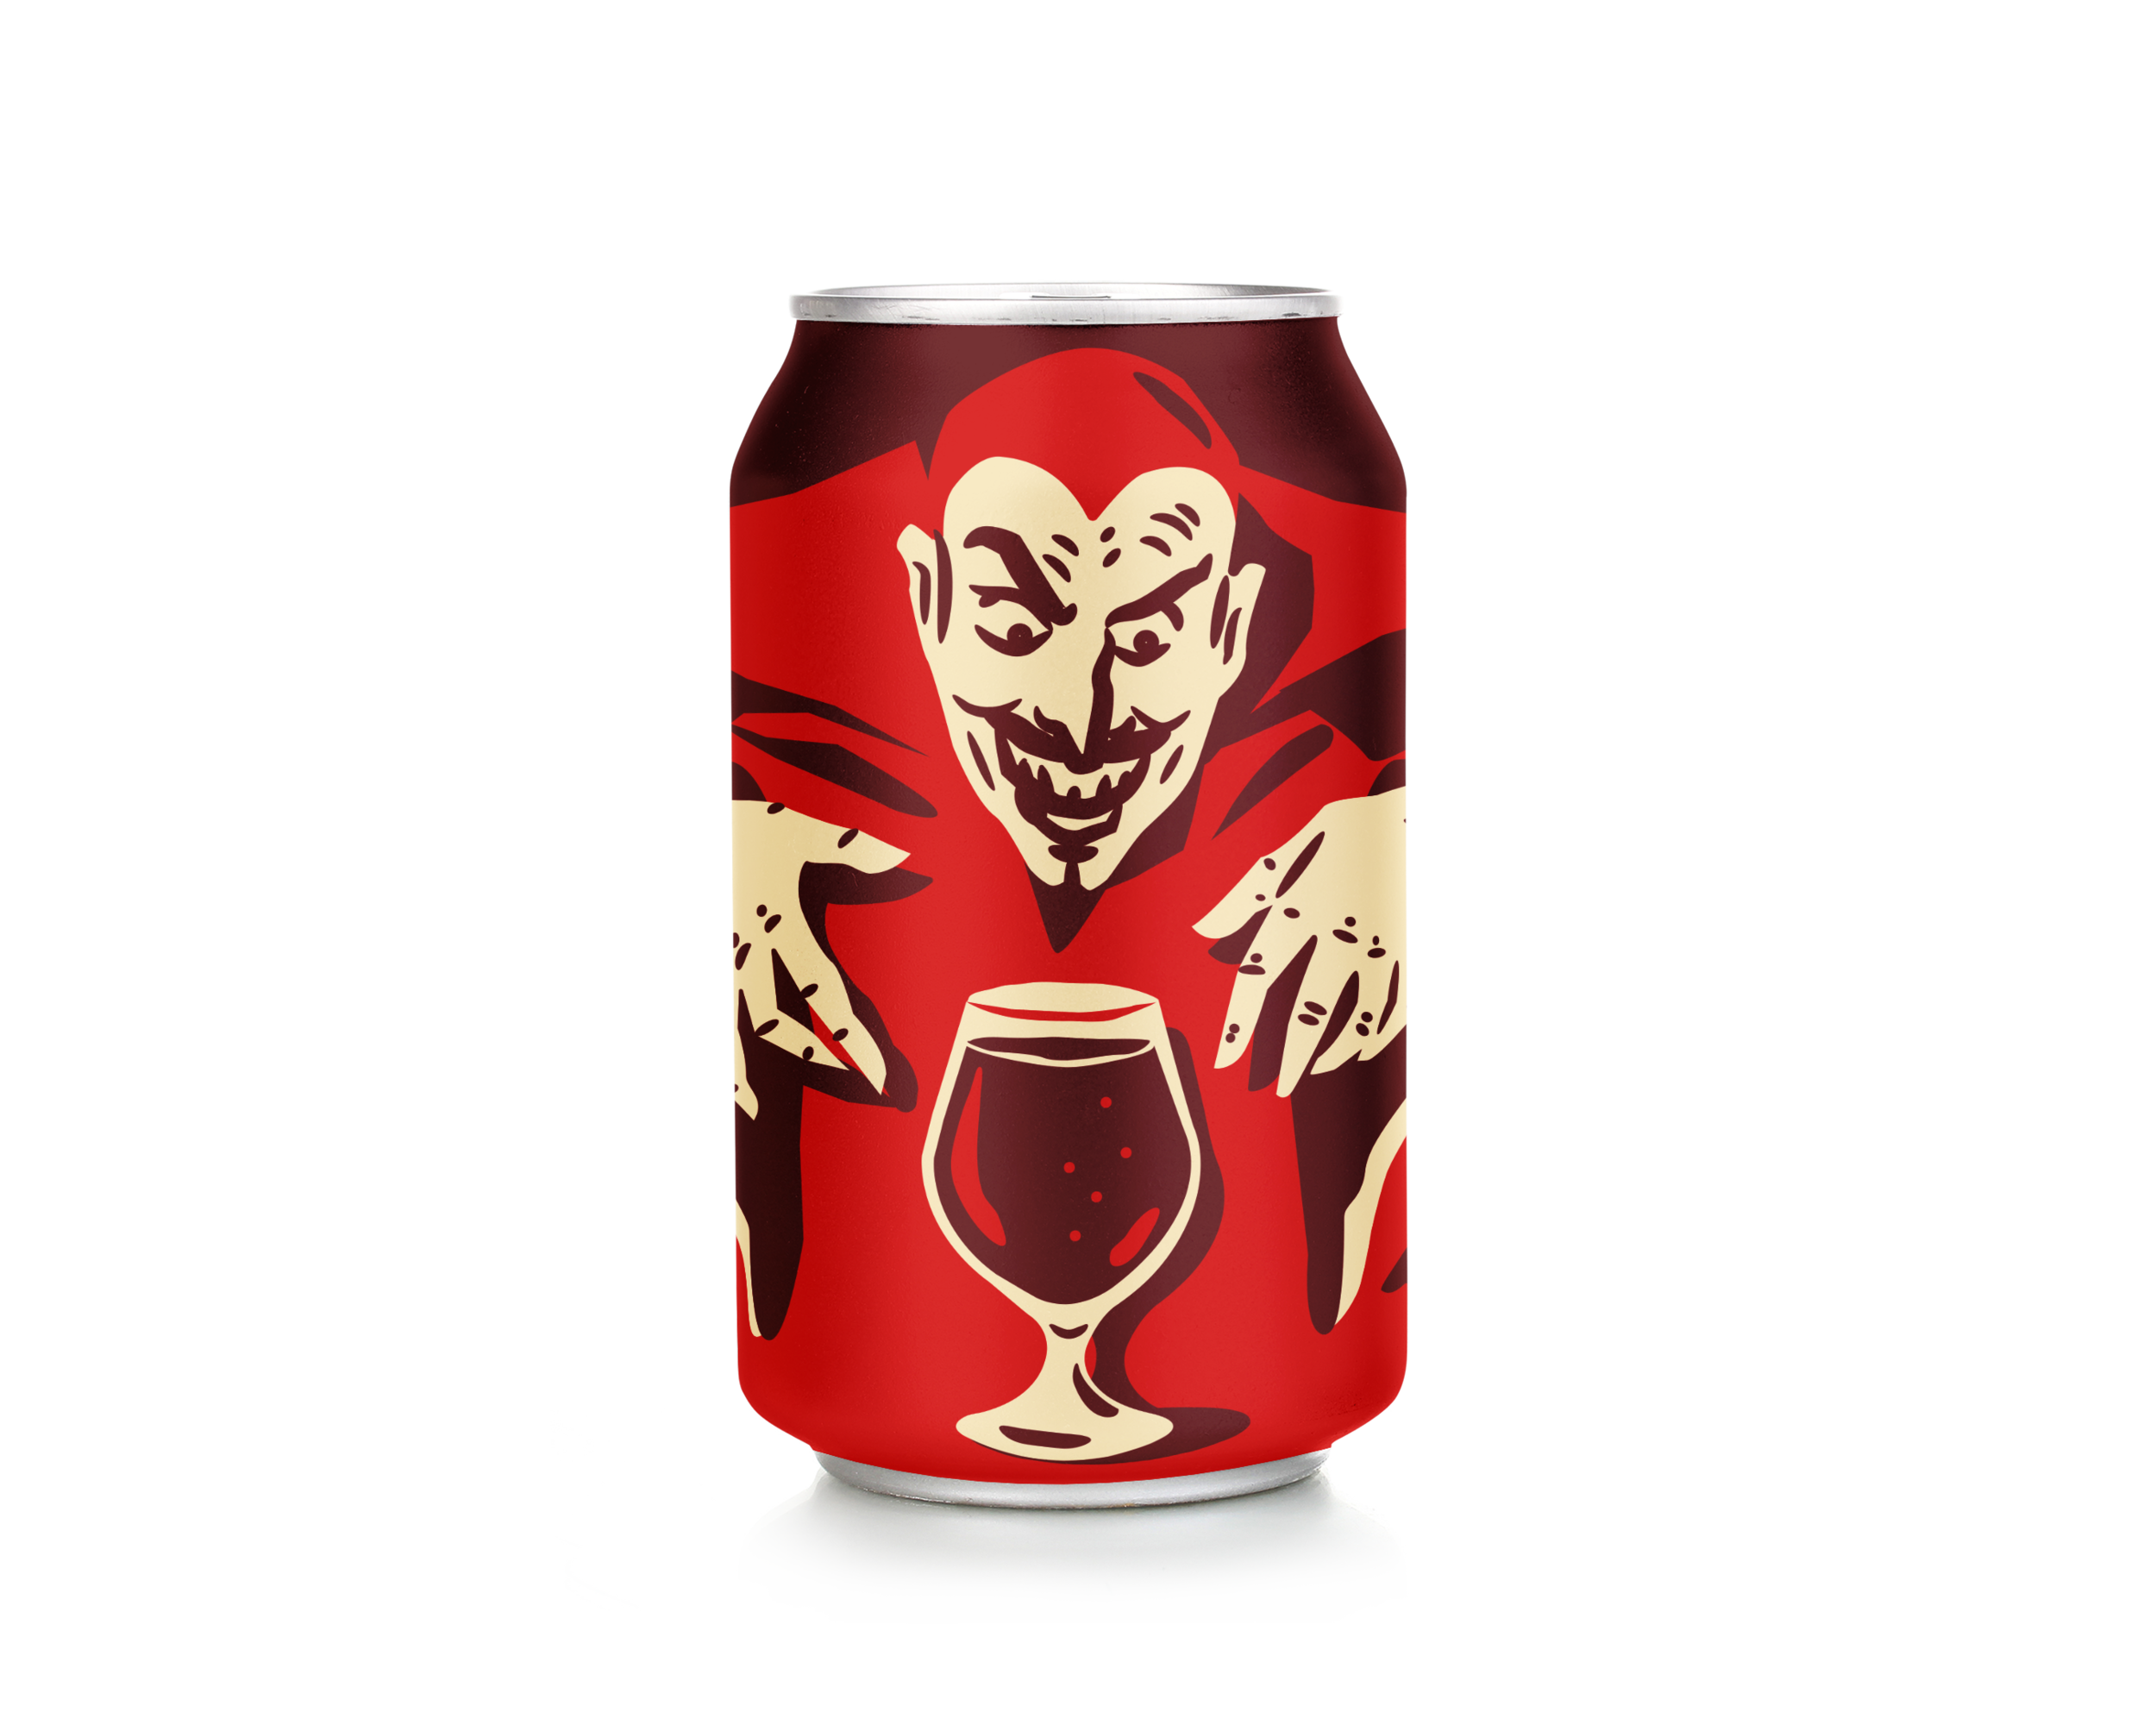 """Eschaton - Belgian-style Quadrupel Ale10.5% ABVHow about a big, malty beer that evokes a good red wine and with a drier finish than you'd expect at 10.5% ABV?Eschaton is a one-of-a-kind oaked all-malt Quadrupel (or """"Belgian Strong Dark"""" if you prefer) that abounds with dark fruit and pit fruit flavors as well as earthy spiciness. Vanilla oak and warm viniferous notes assert themselves as the beer warms to reveal additional layers of delicious complexity.Suggested food pairings: Lamb, rabbit, duck, Stilton cheese, Belgian chocolate, tart fruit desserts."""